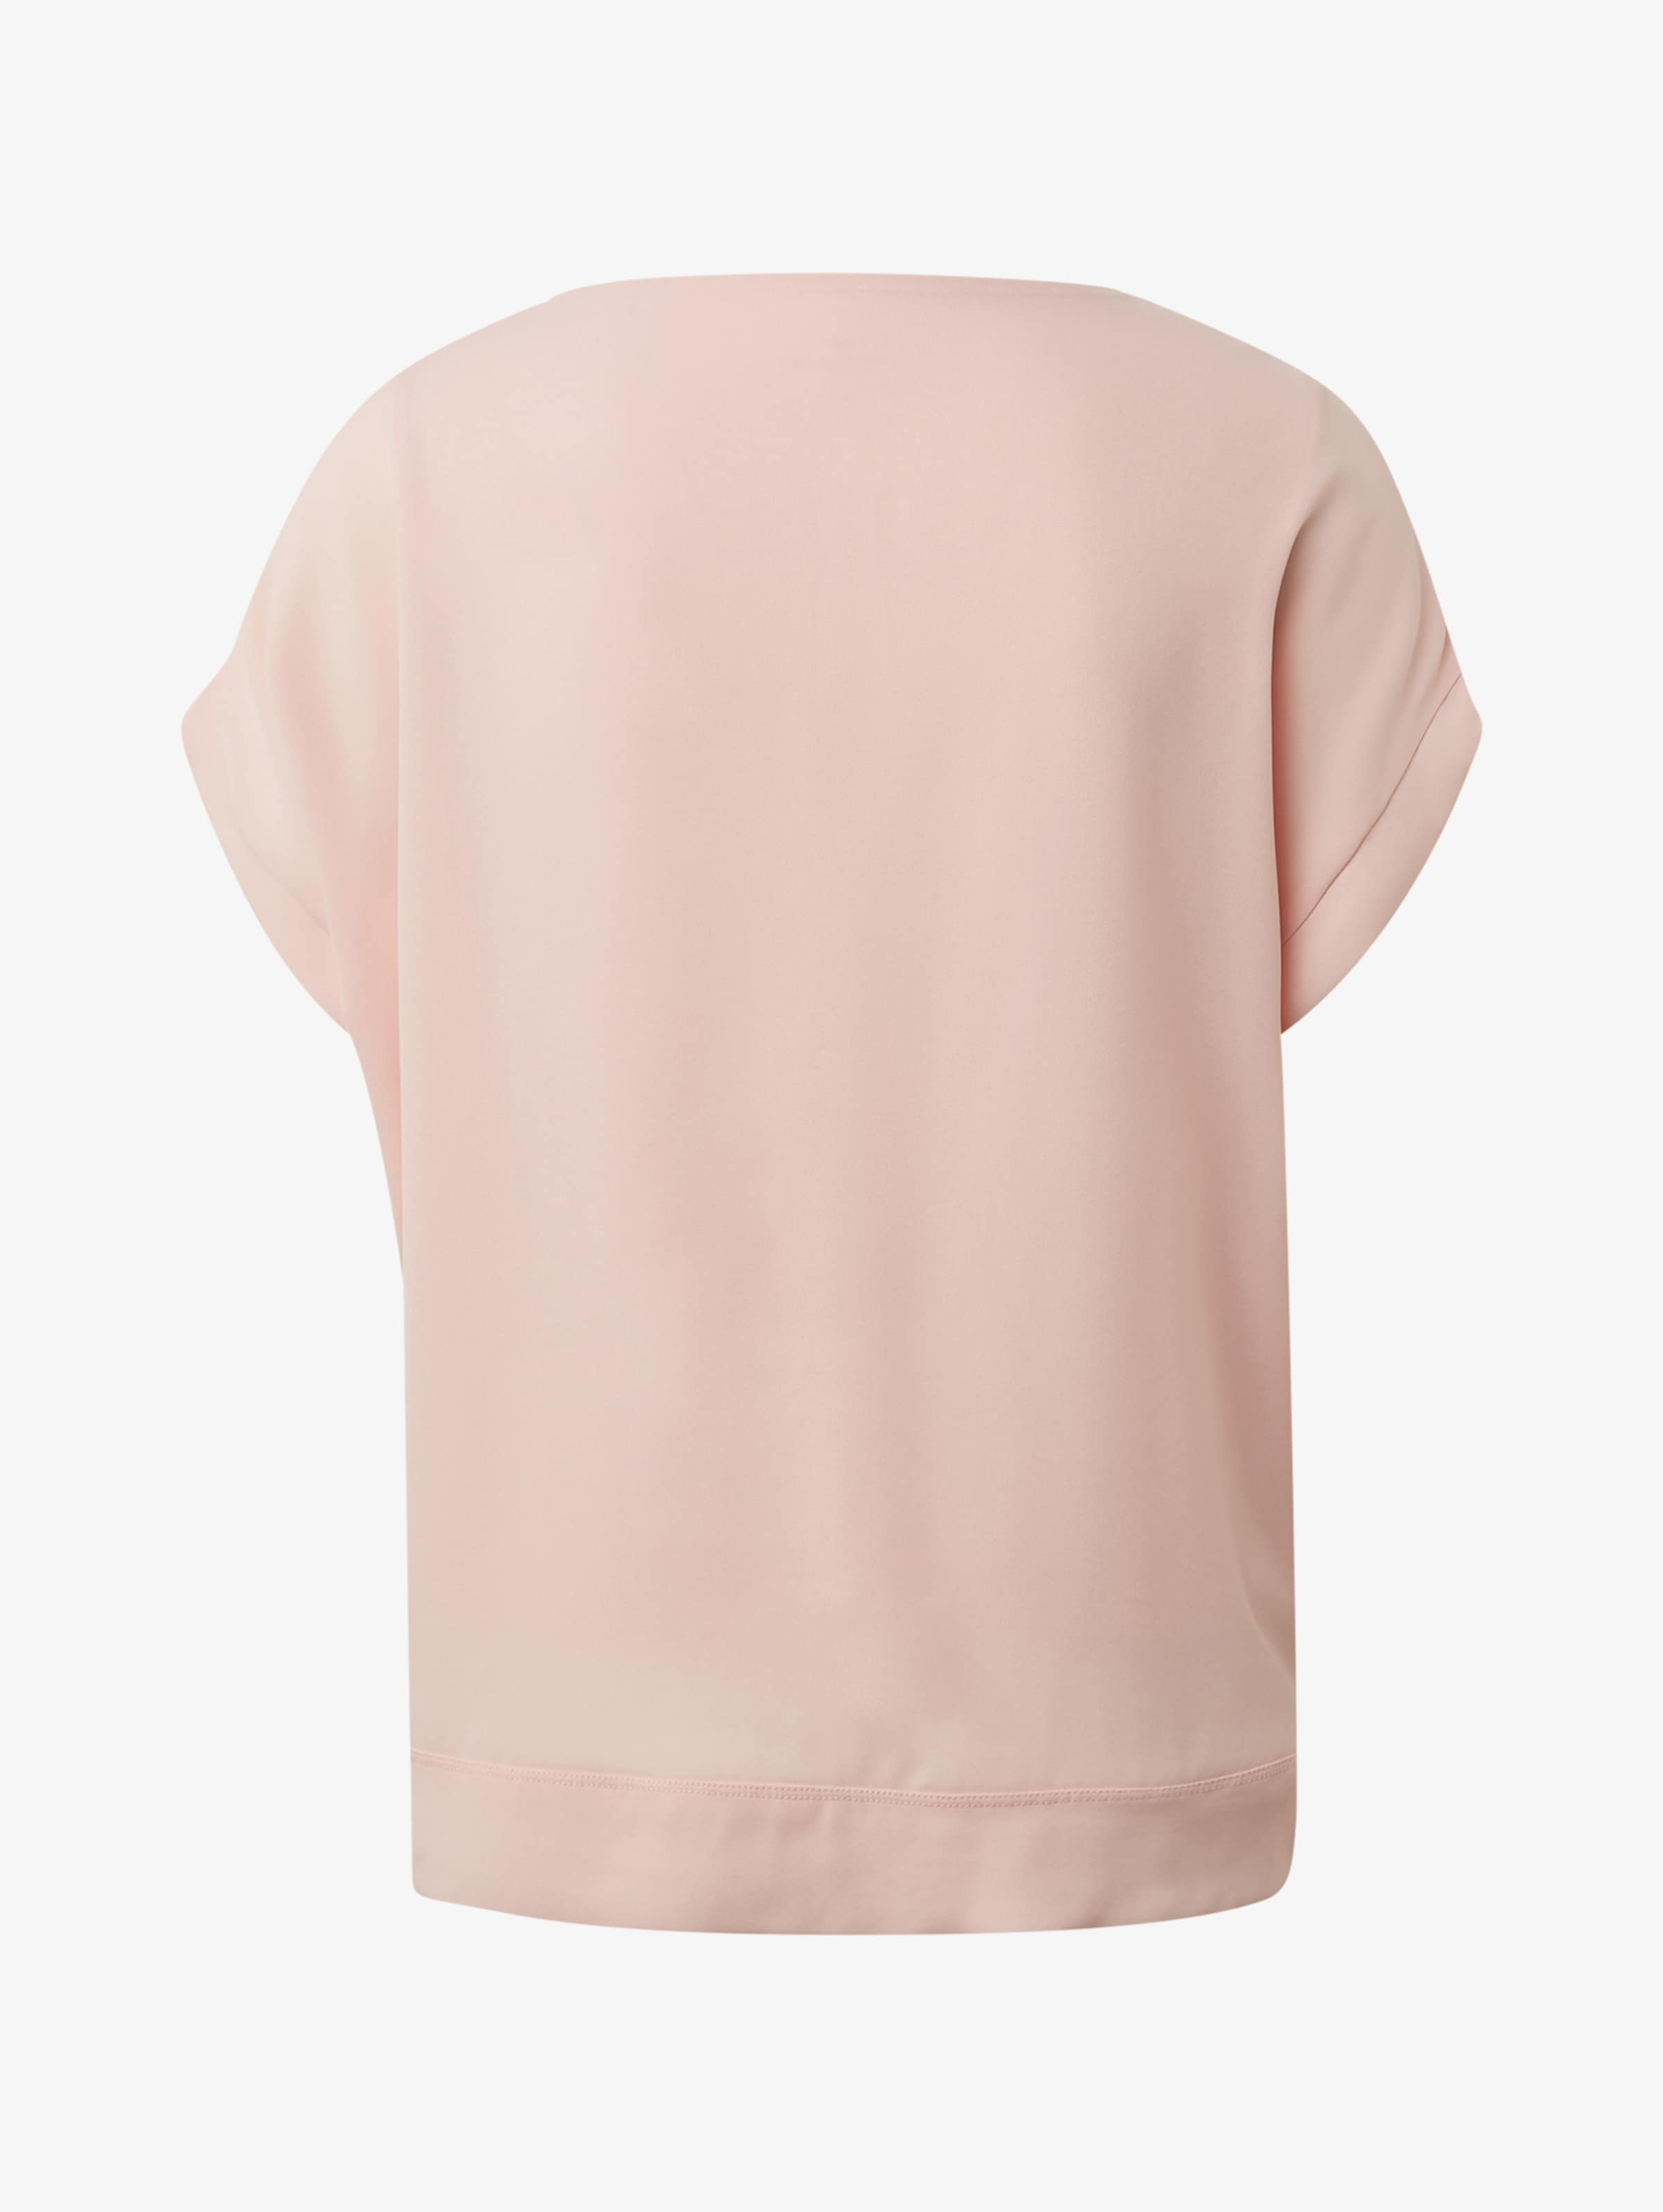 Tailor Tom shirt In Rosa T mOv0N8nw